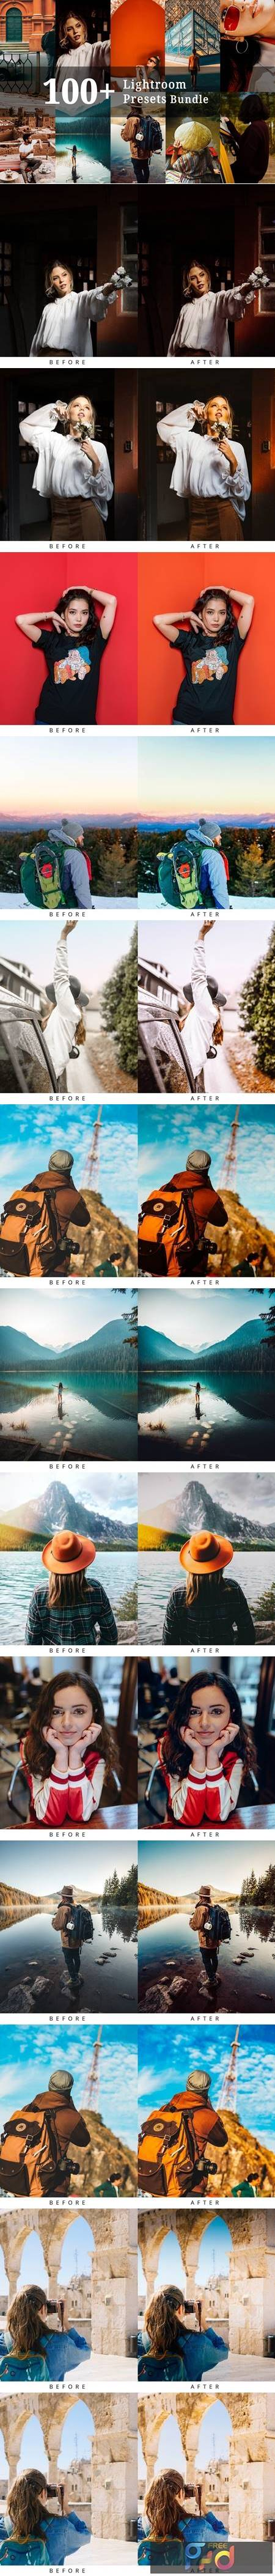 100+ Lightroom Presets Bundle 5363529 1